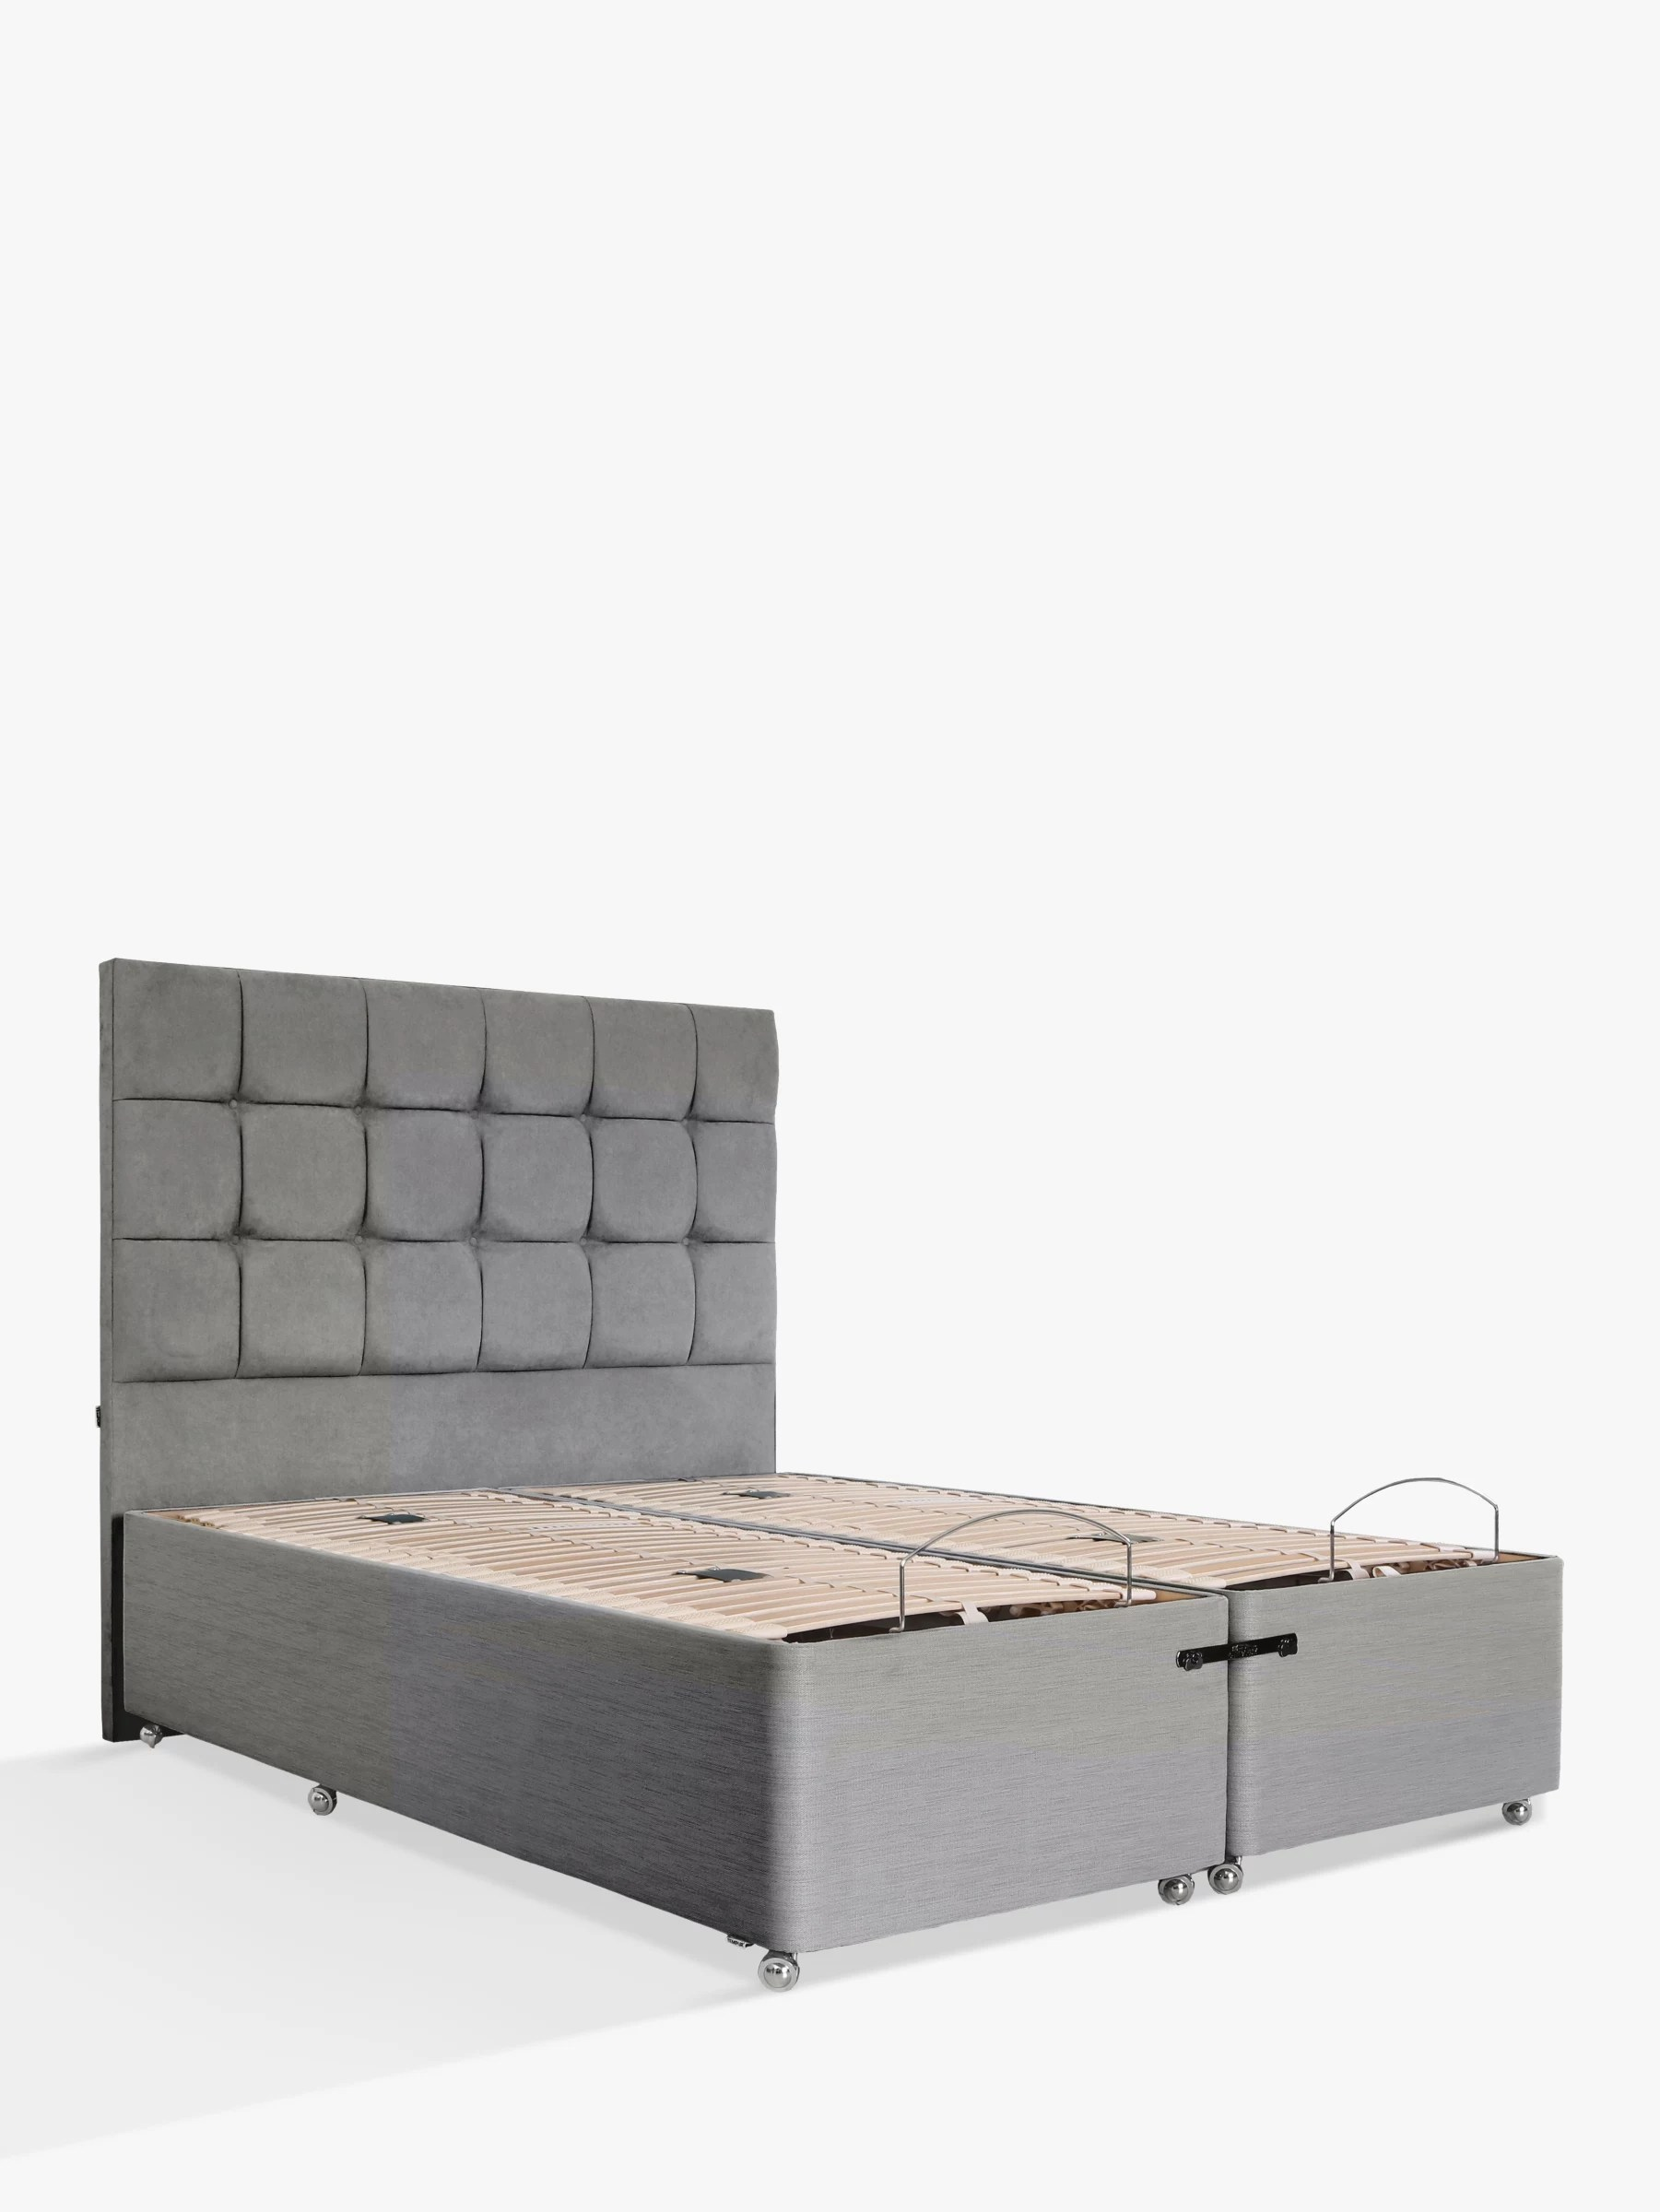 Divan Beds Cheap Tempur Adjustable Divan Bed King Size At John Lewis Partners